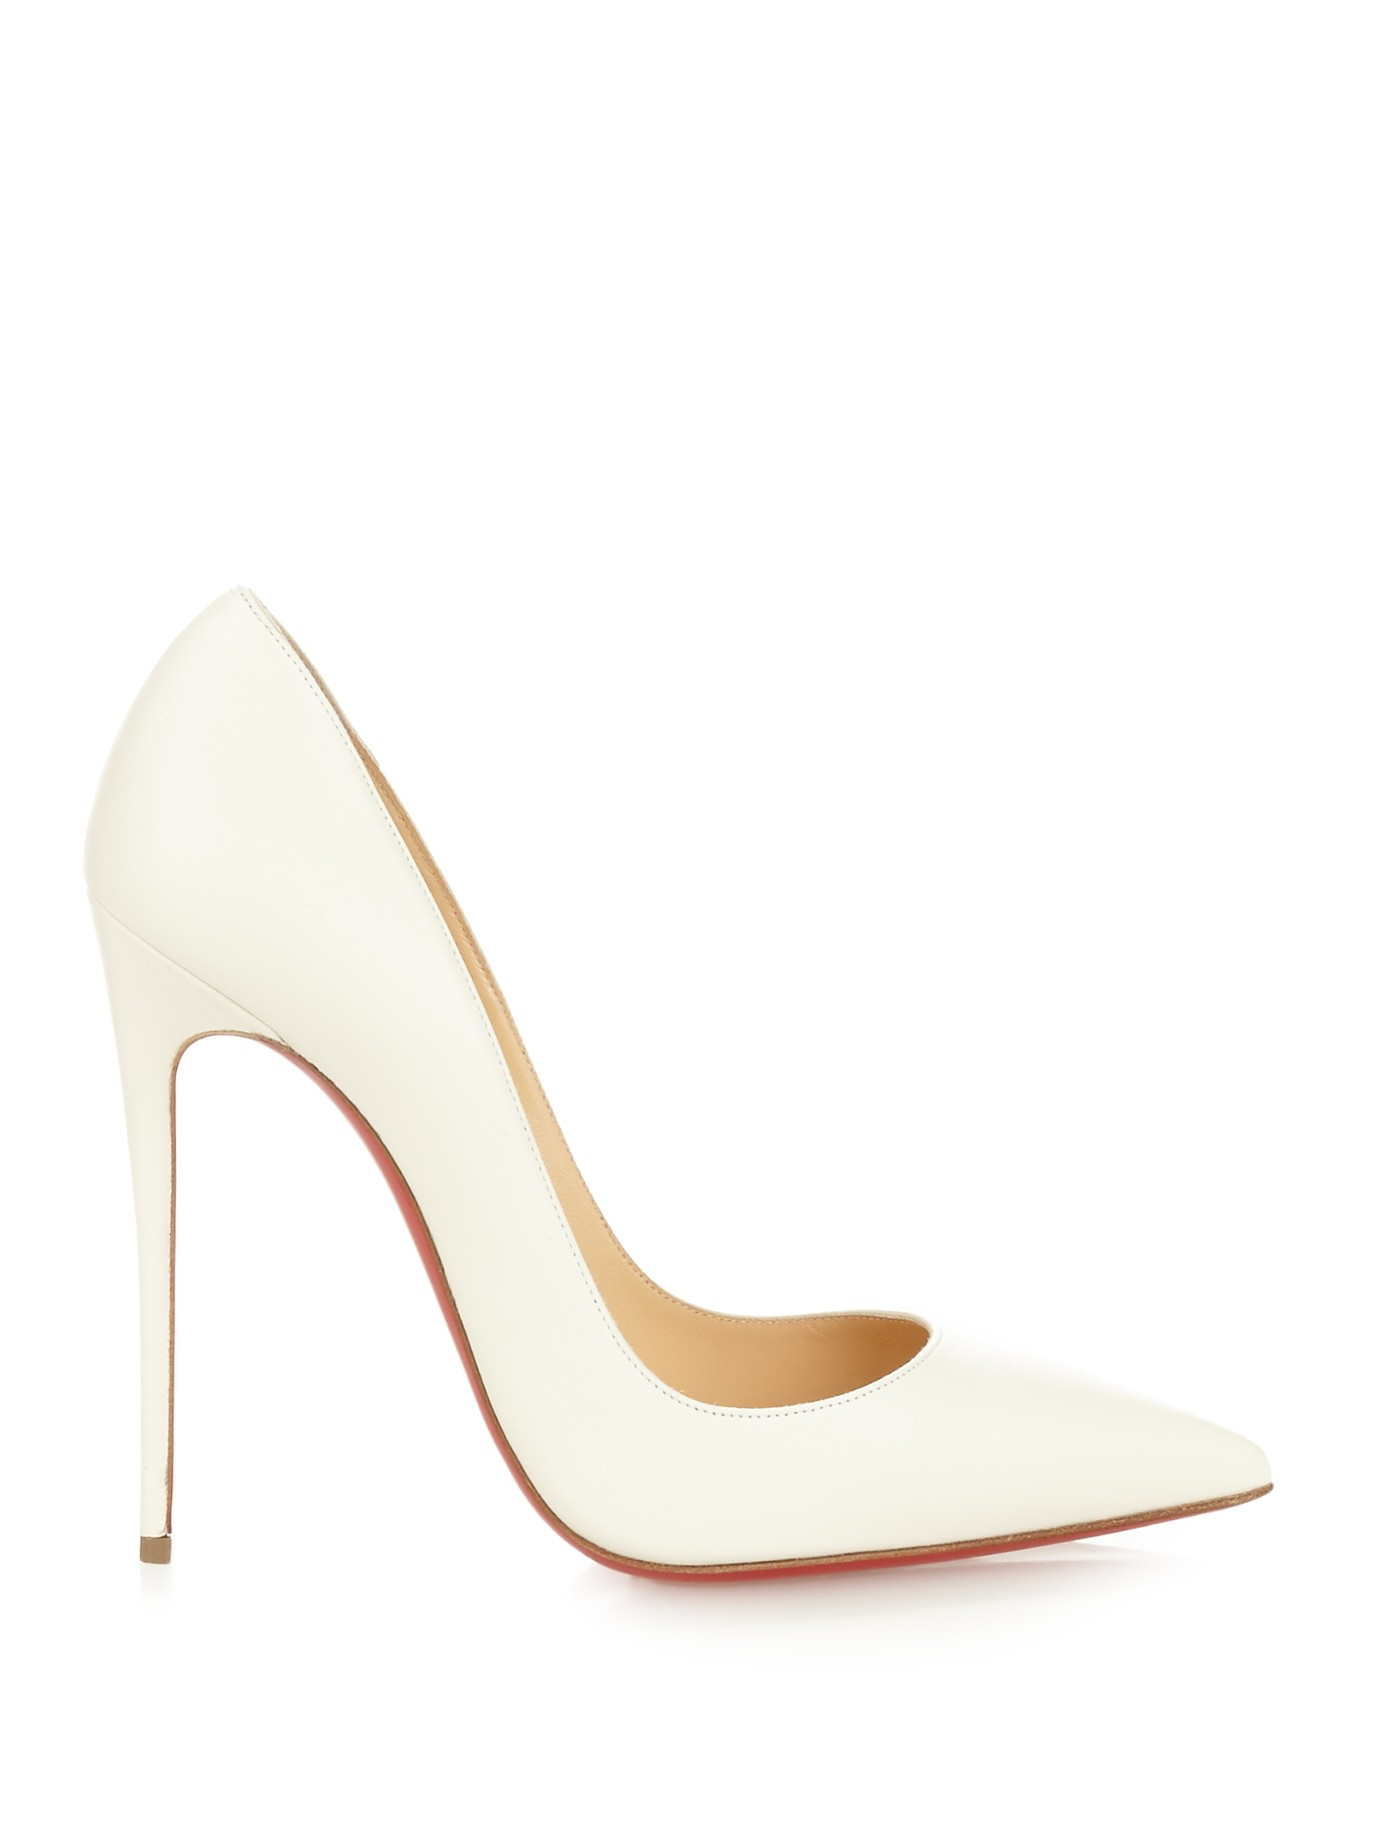 low priced 95866 7c890 Women's White So Kate Leather Pumps